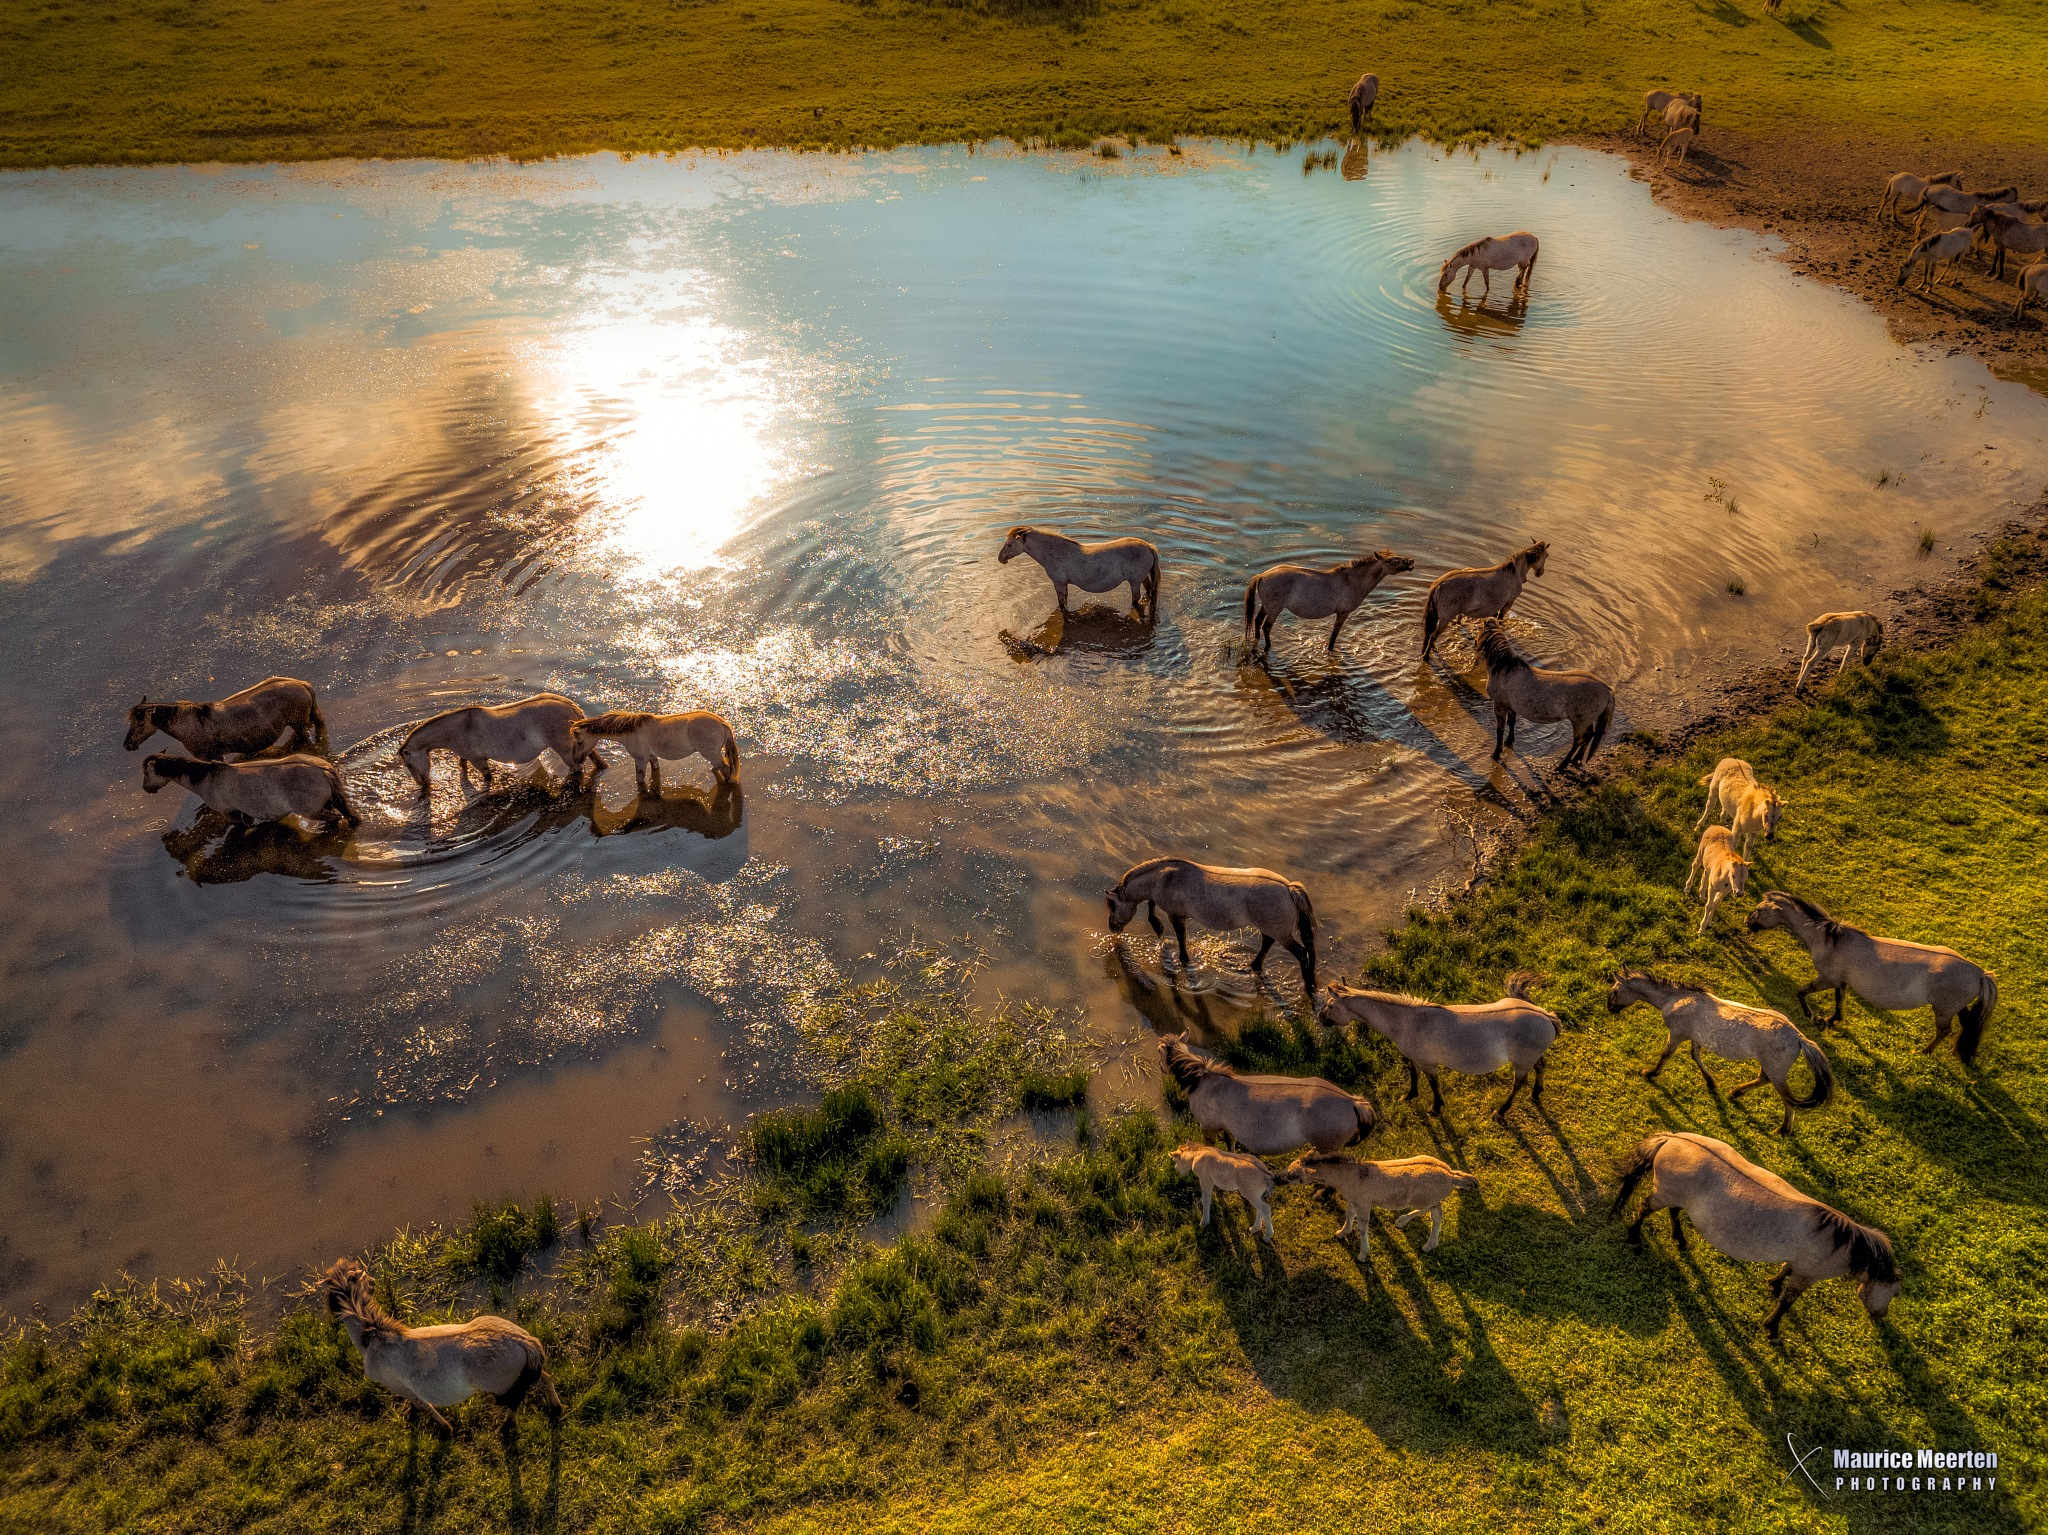 Horses by the pool by Maurice Meerten